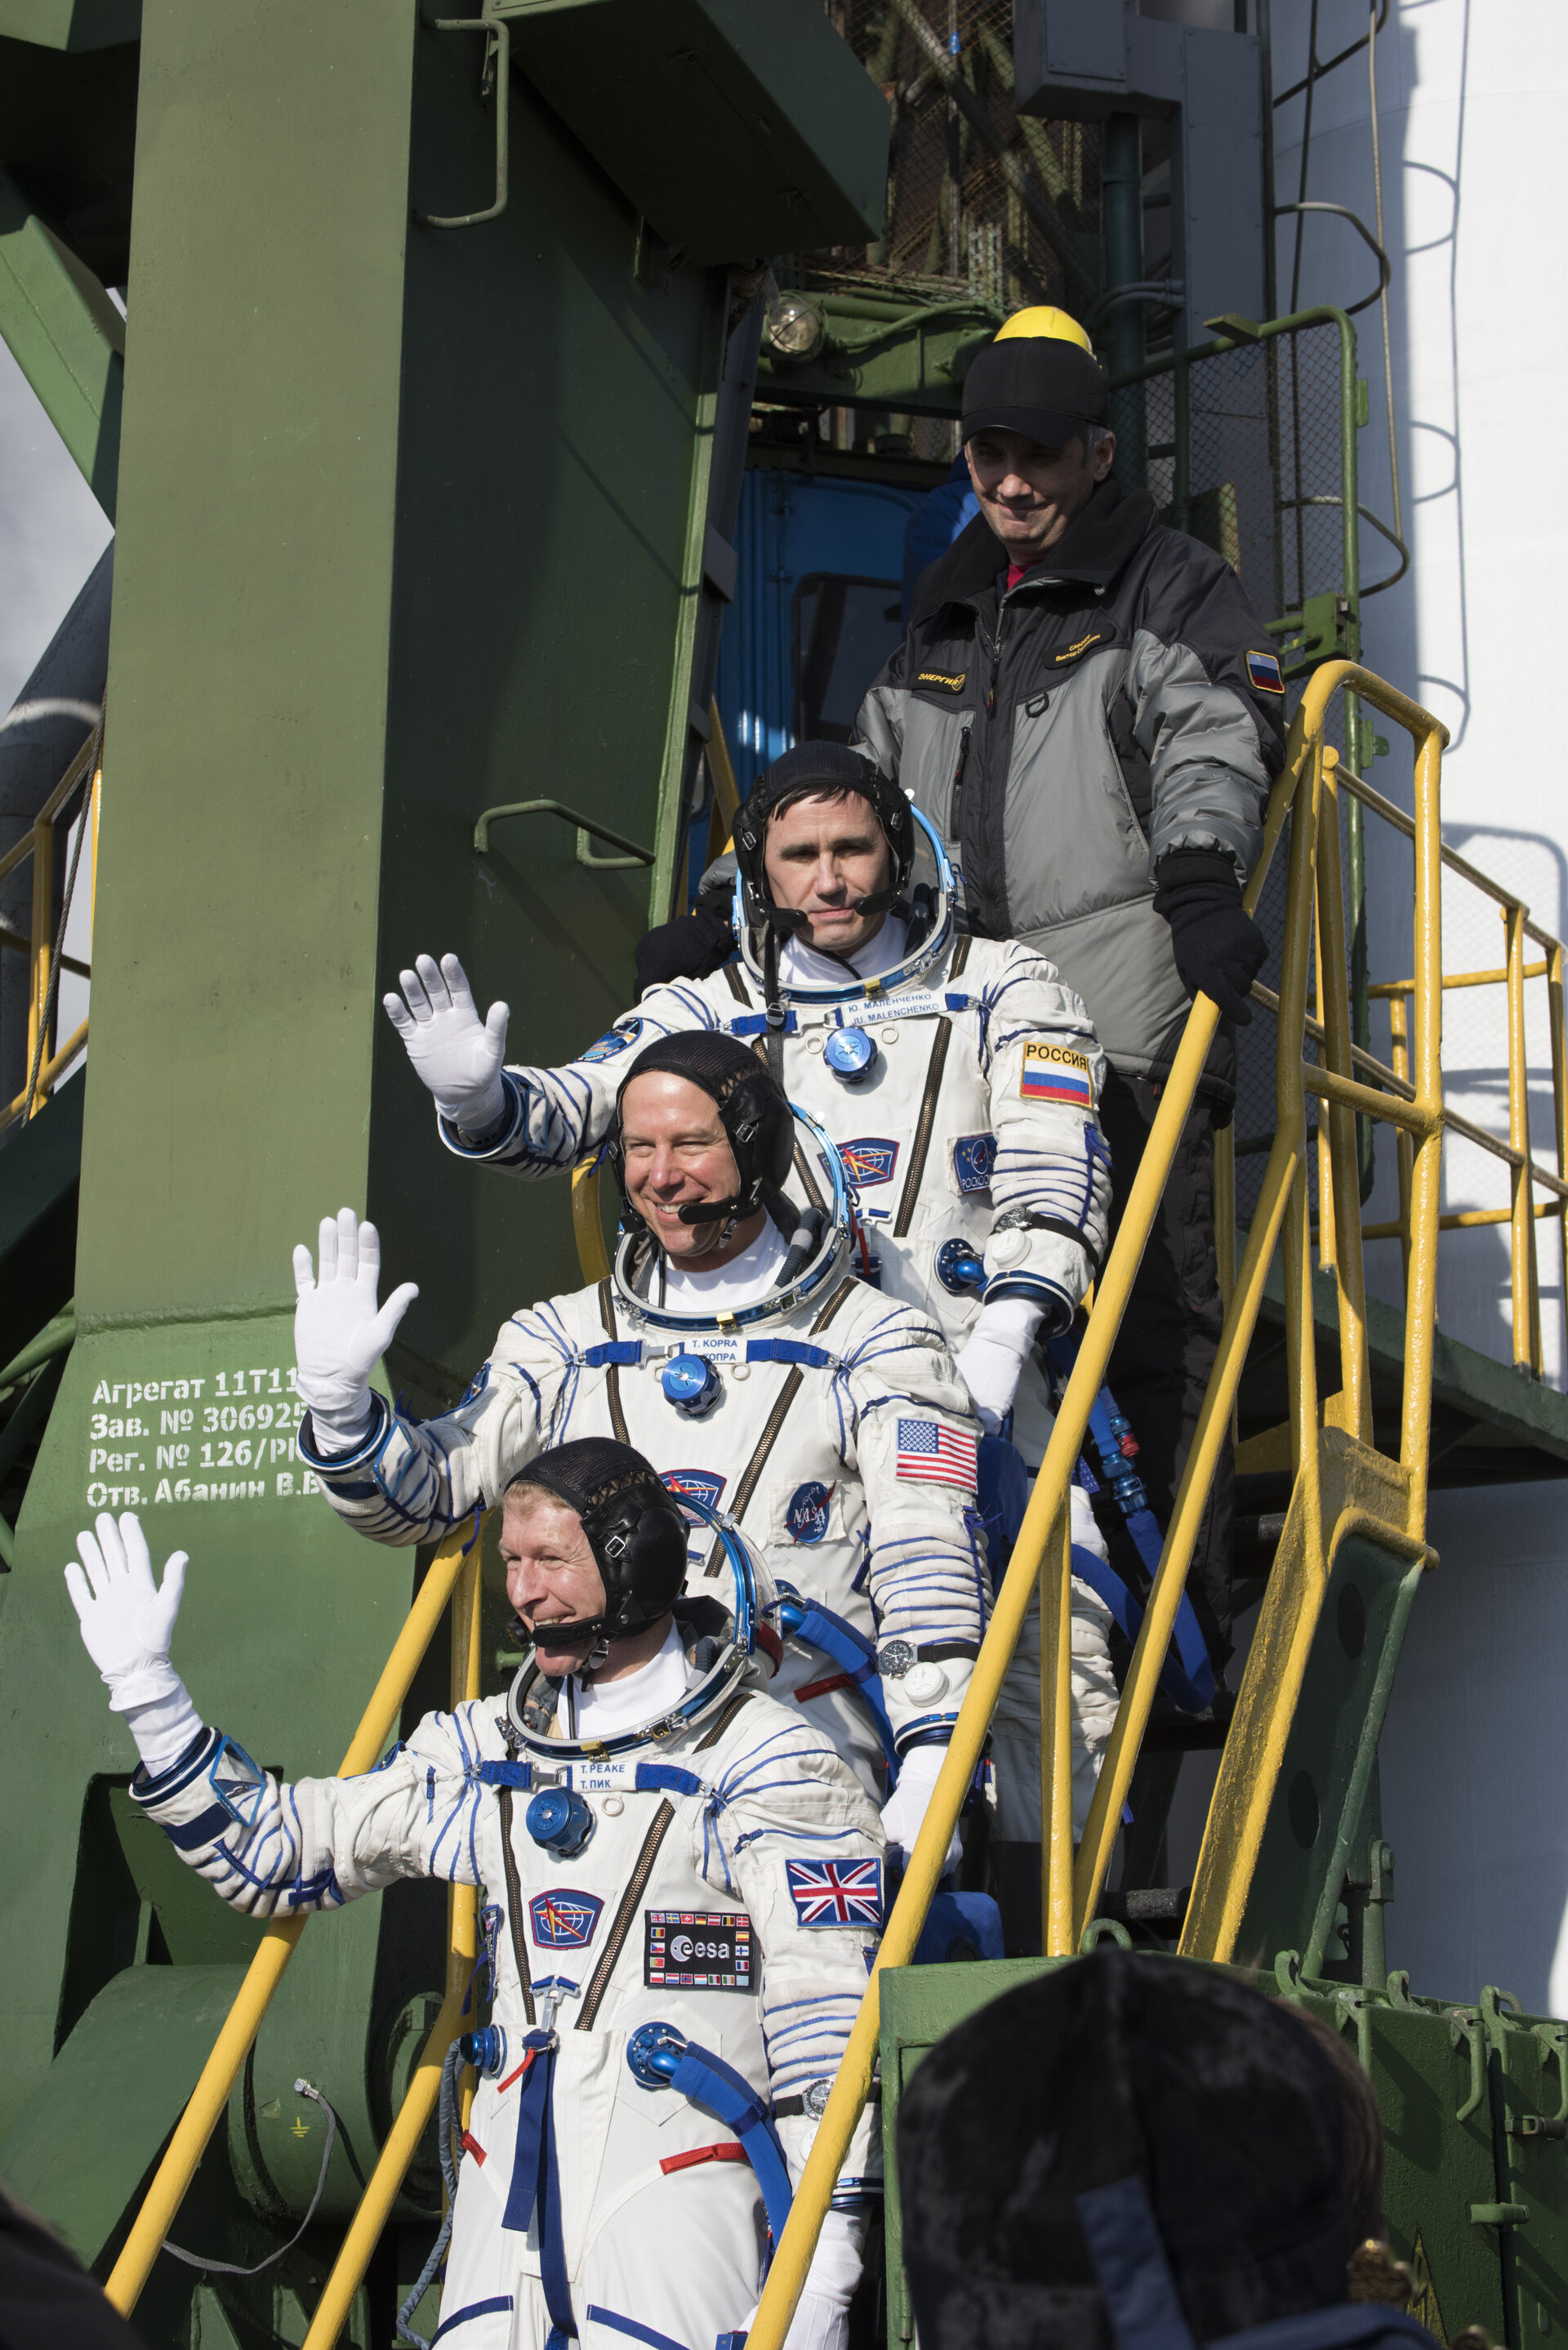 Soyuz TMA-19M crew members greeting audience at the launch pad